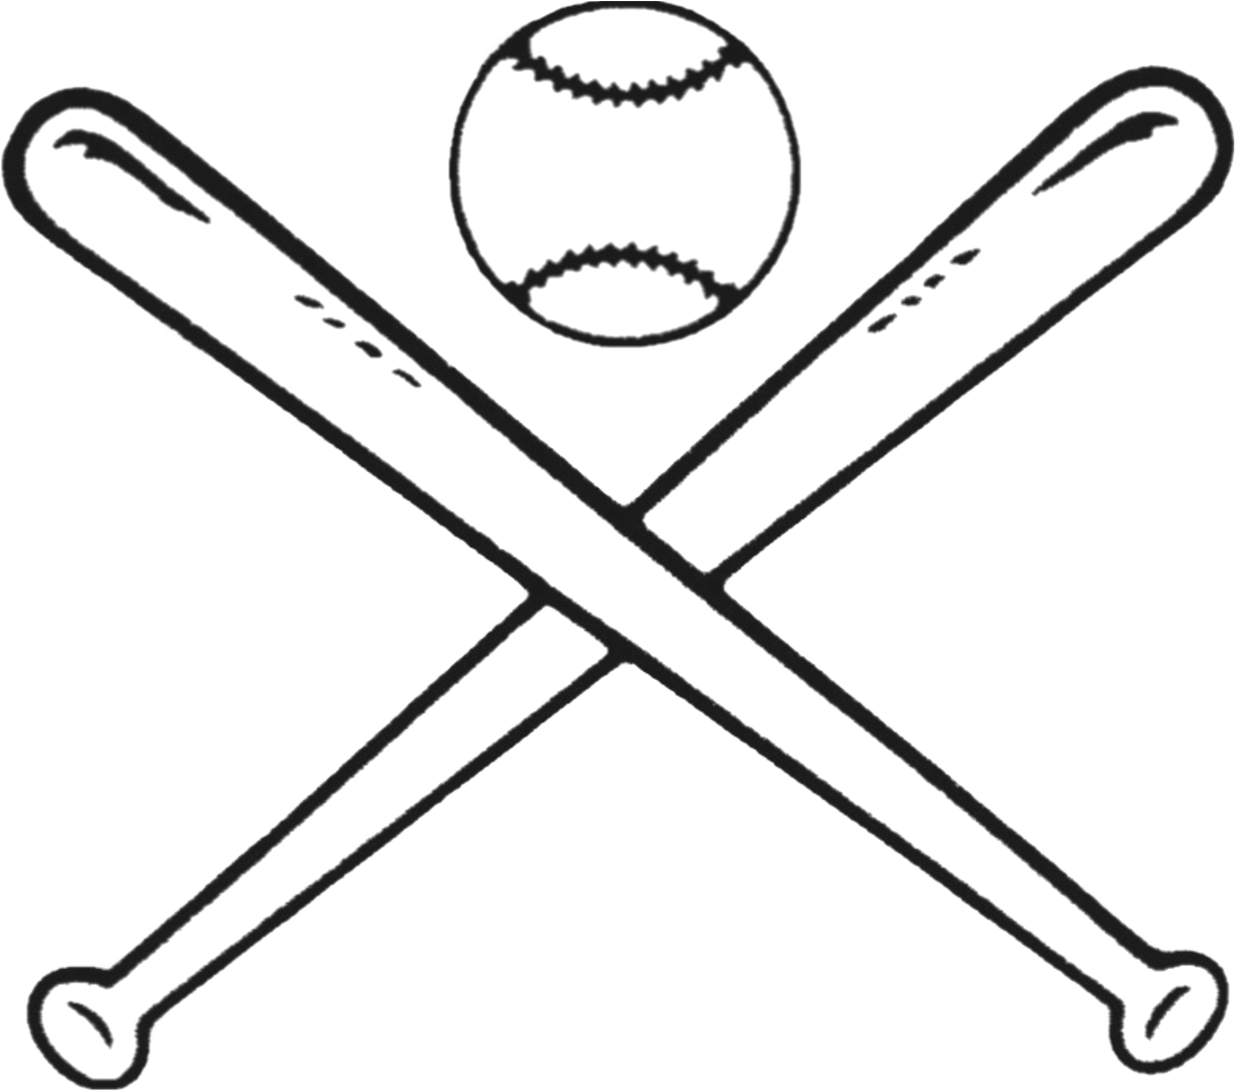 Softball bat and ball clipart jpg freeuse Baseball Bats Drawing Bat And Ball Games Clip Art - Black ... jpg freeuse